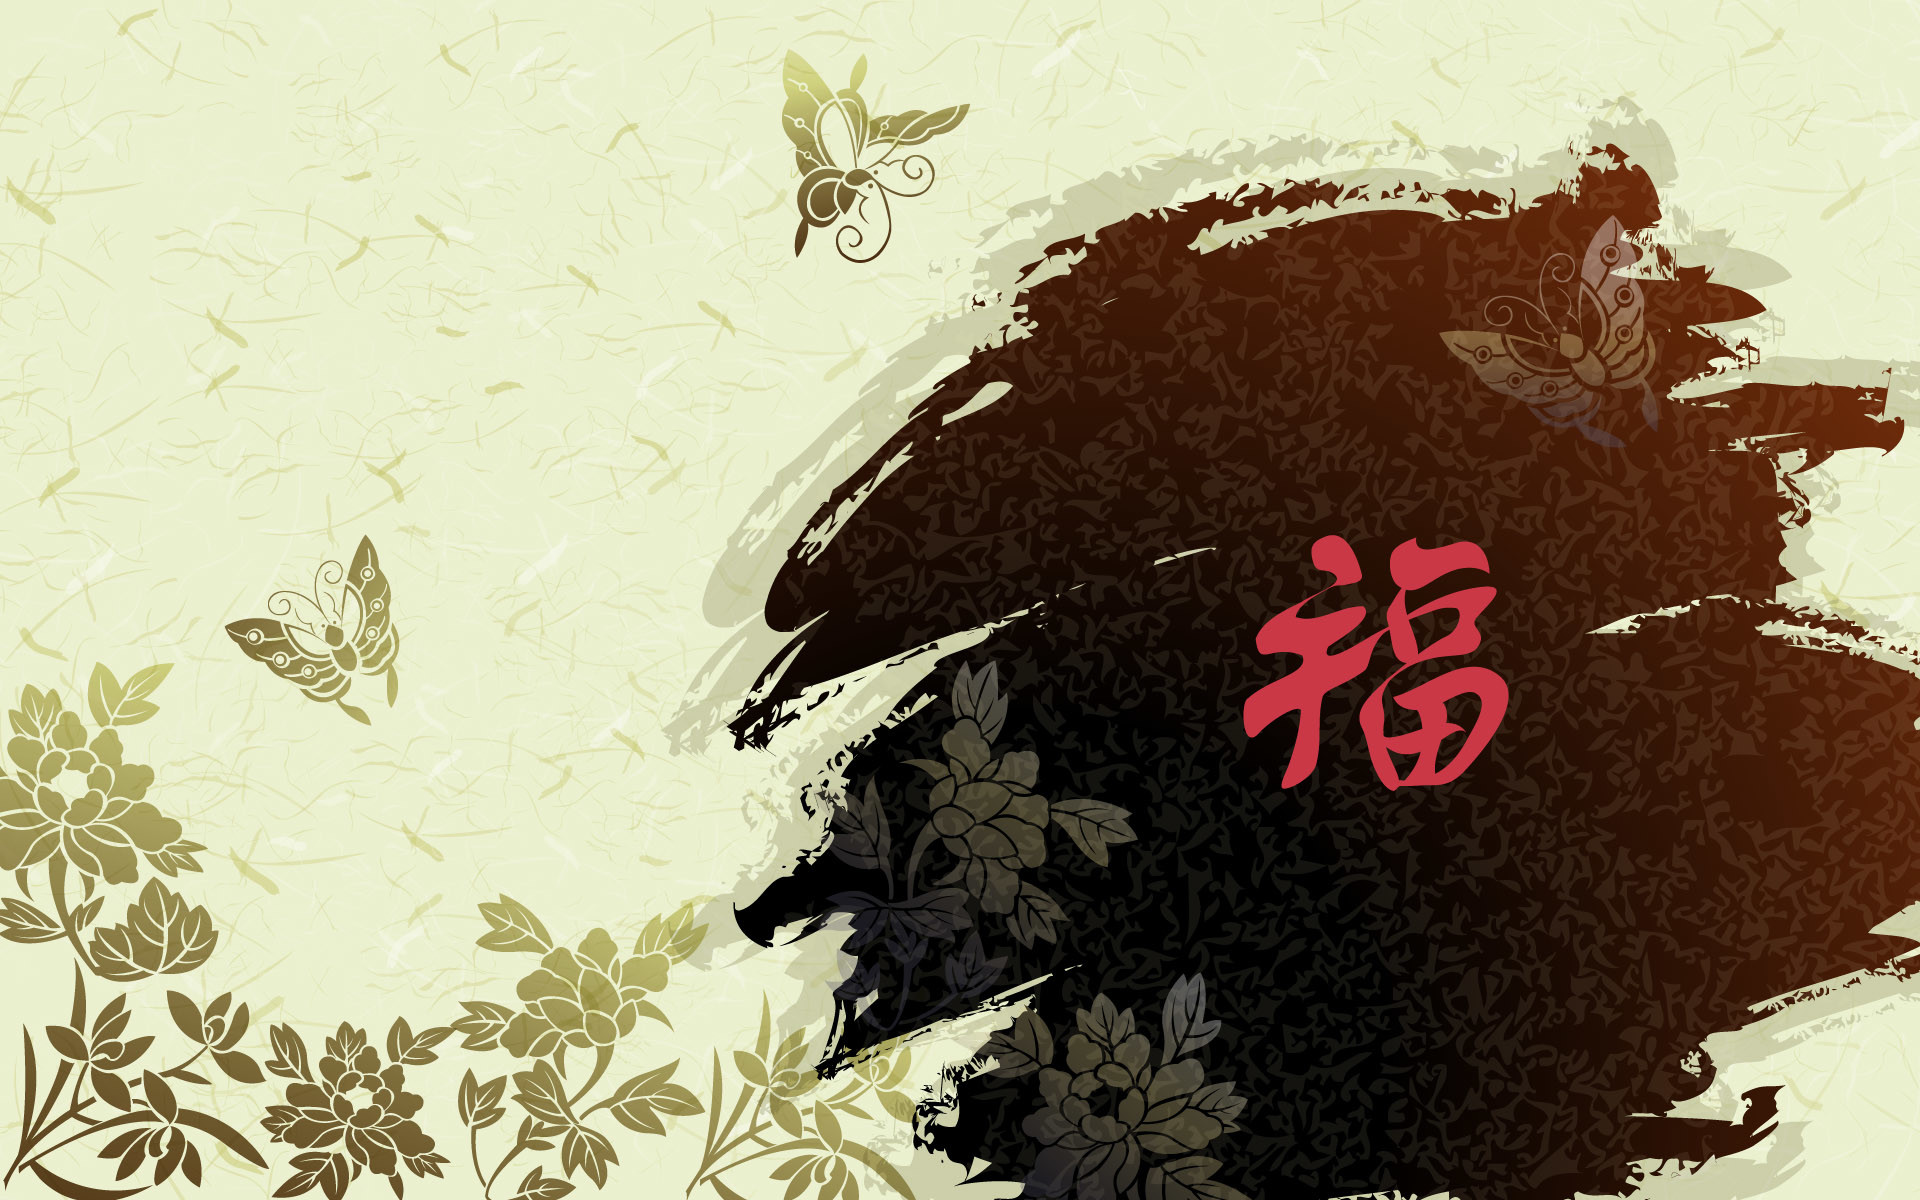 Res: 1920x1200, HD Chinese Wallpaper Designs.